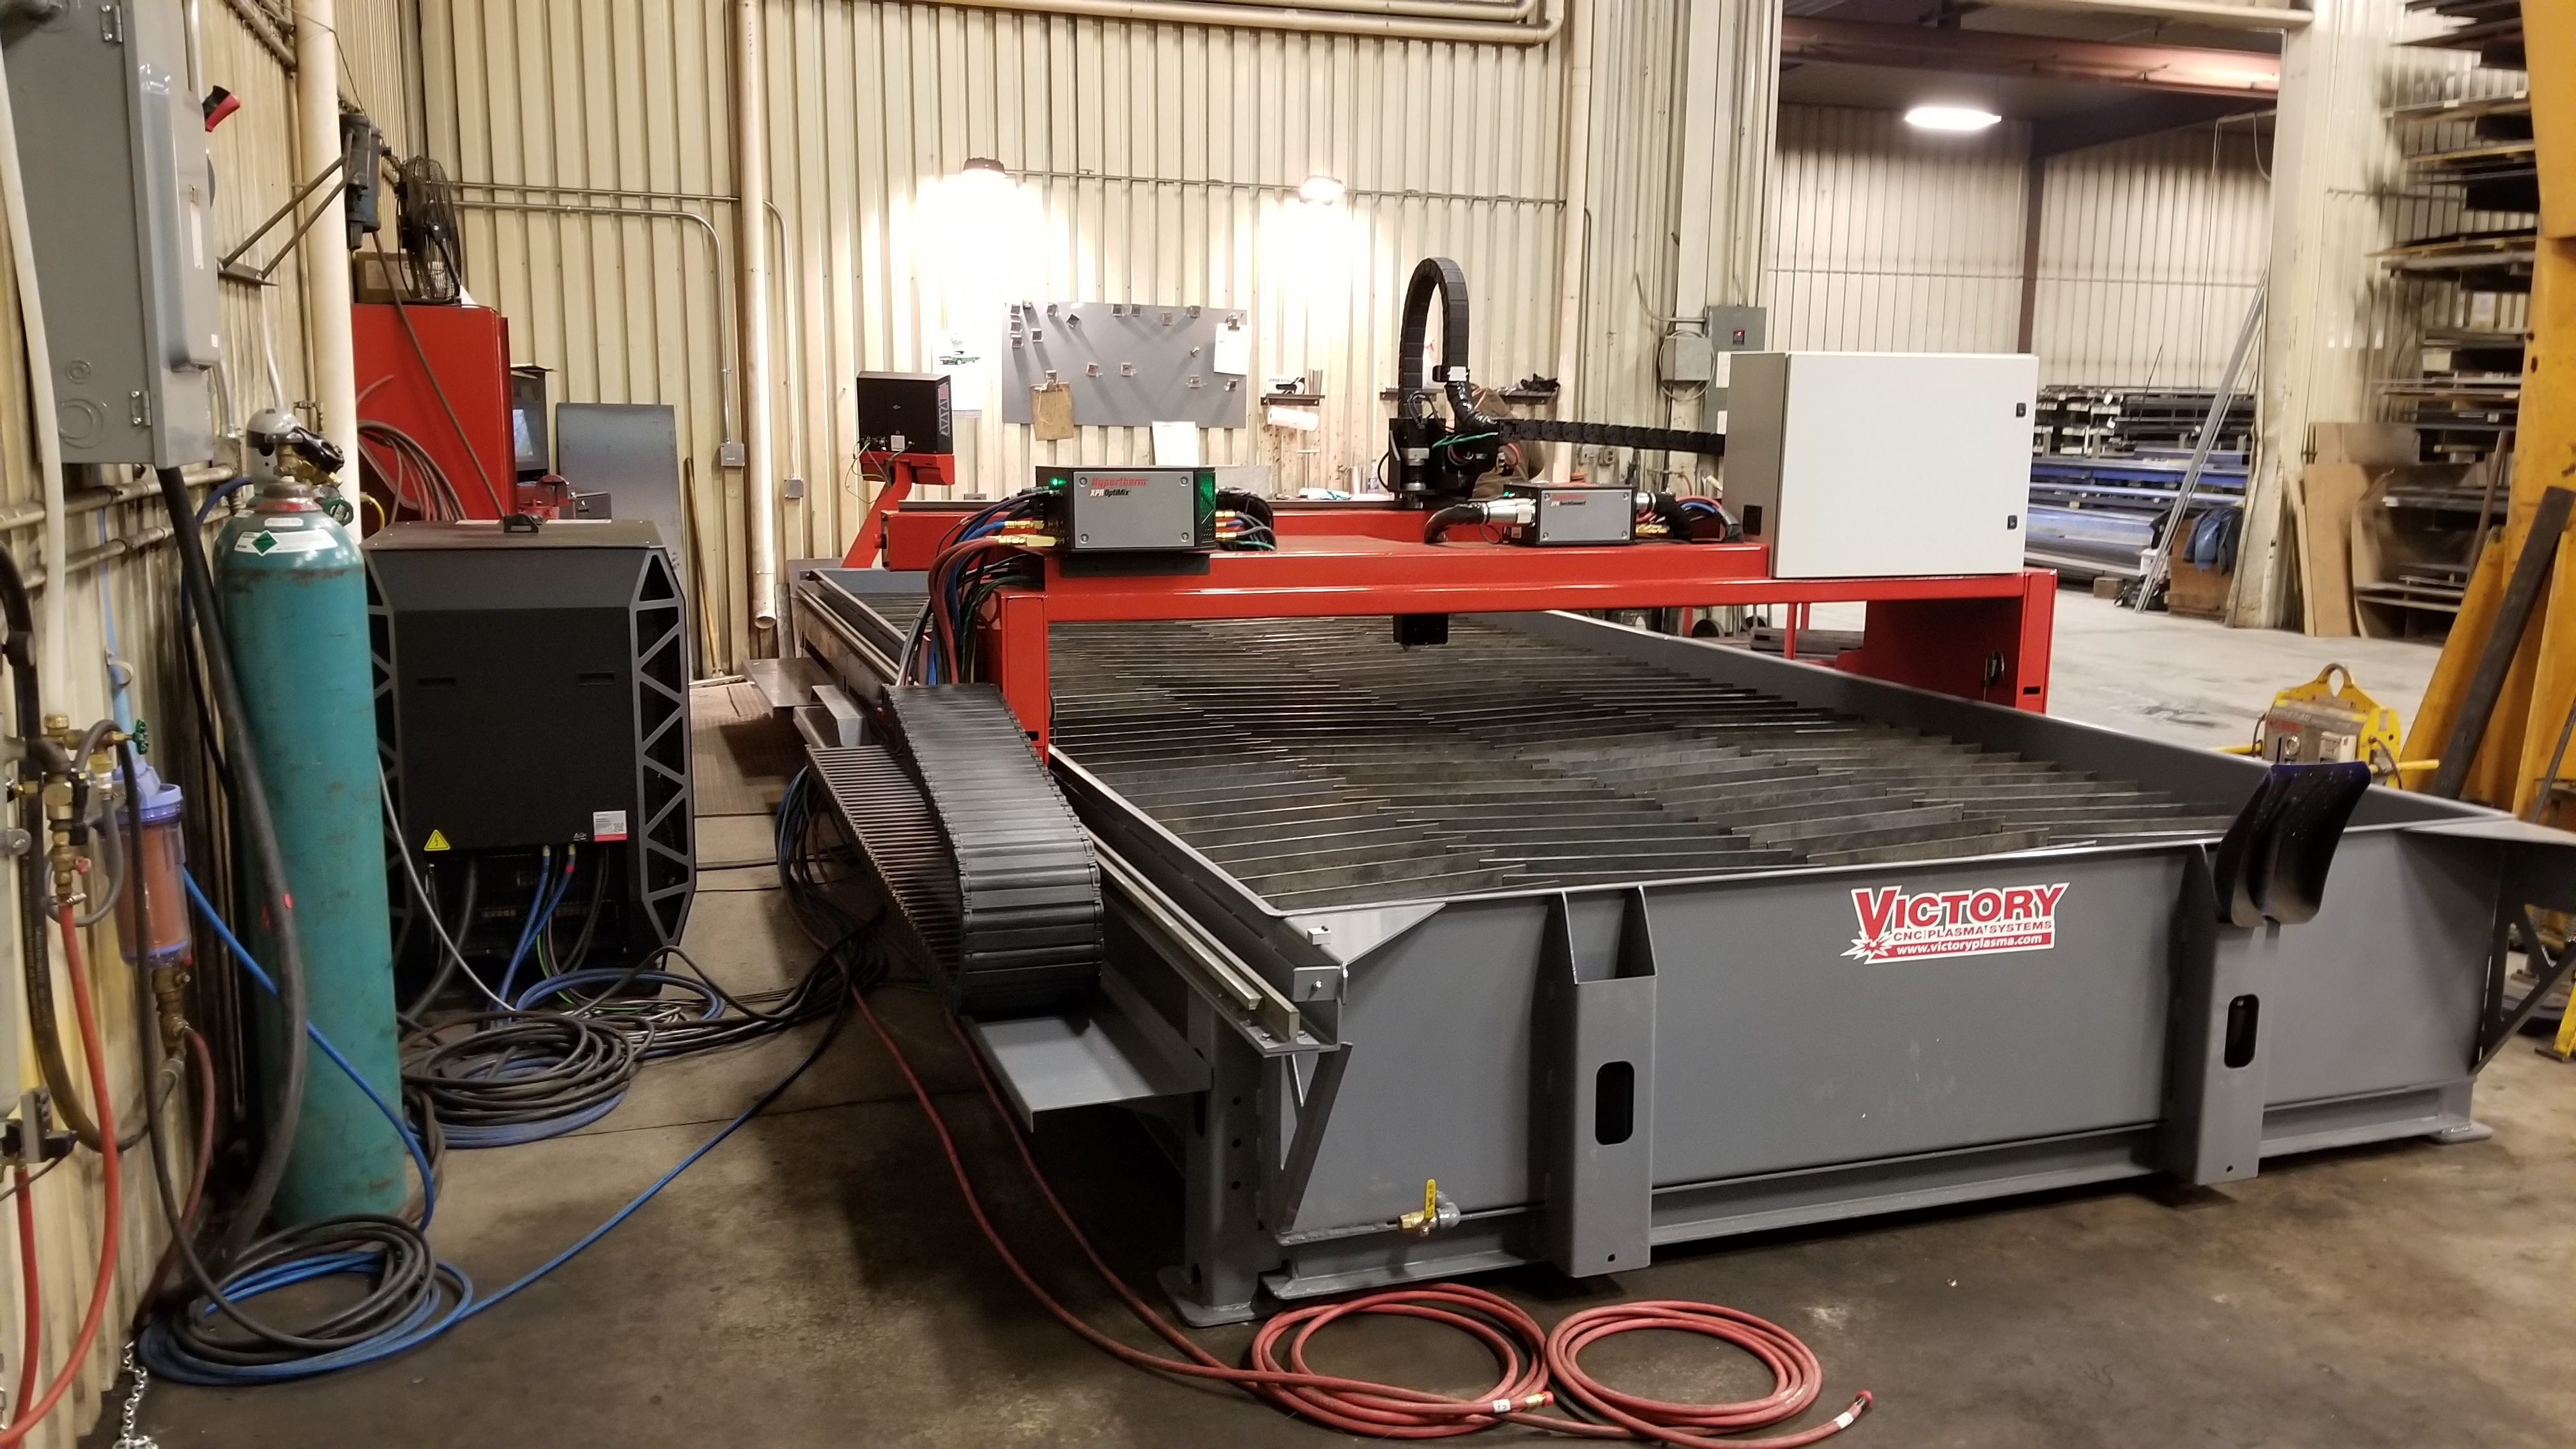 Victory CNC Plasma Systems 8'x20' Hypertherm EDGE Connect system with high-def XPR300